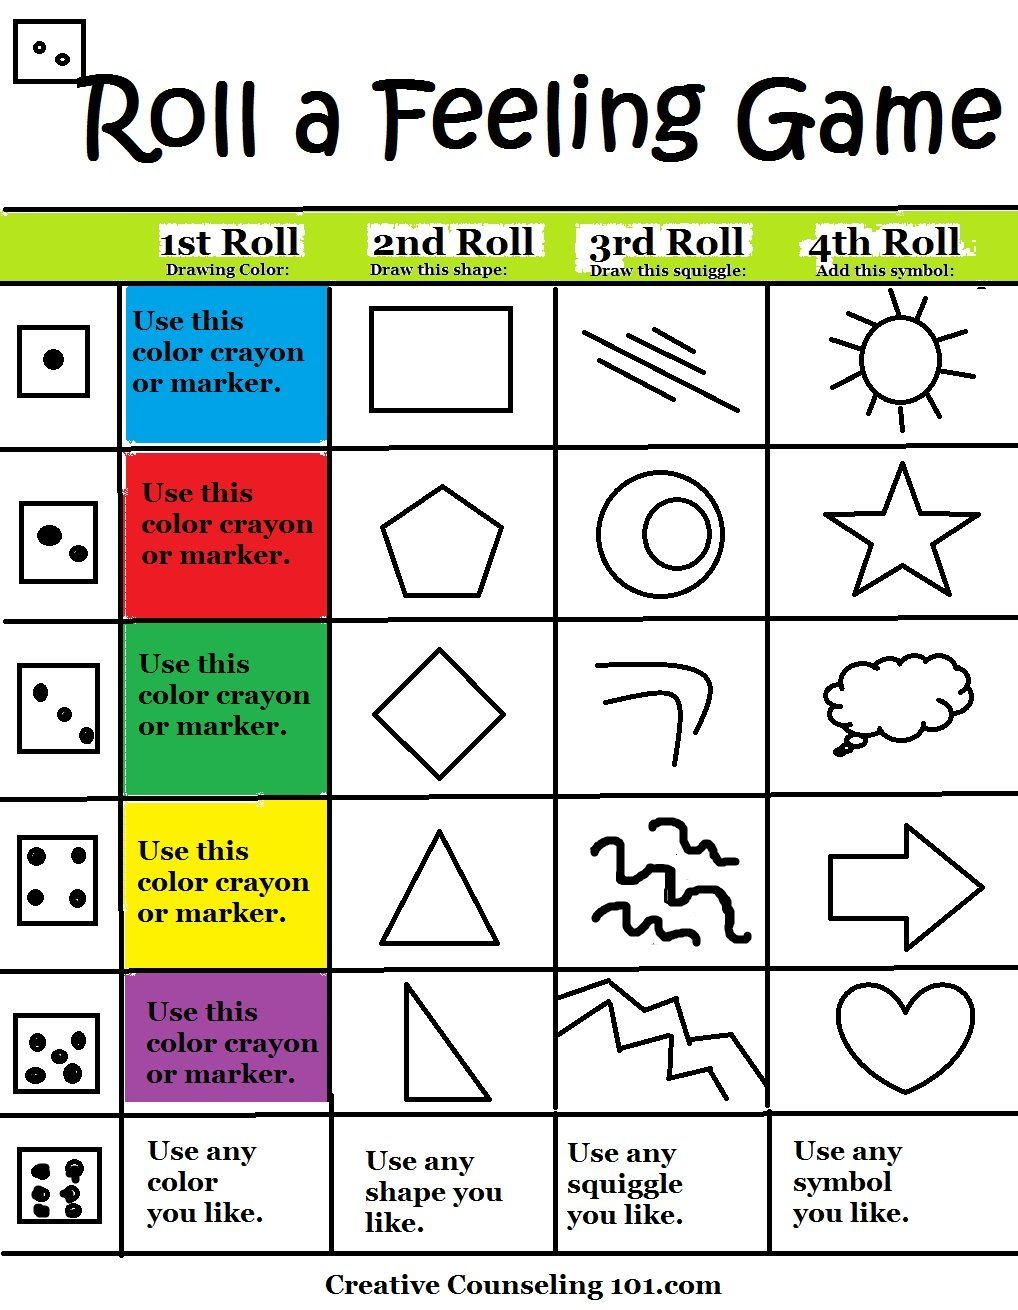 Art Therapy Roll-A-Feelings Game With Free Art Therapy Game Board - Printable Mind Puzzle Games